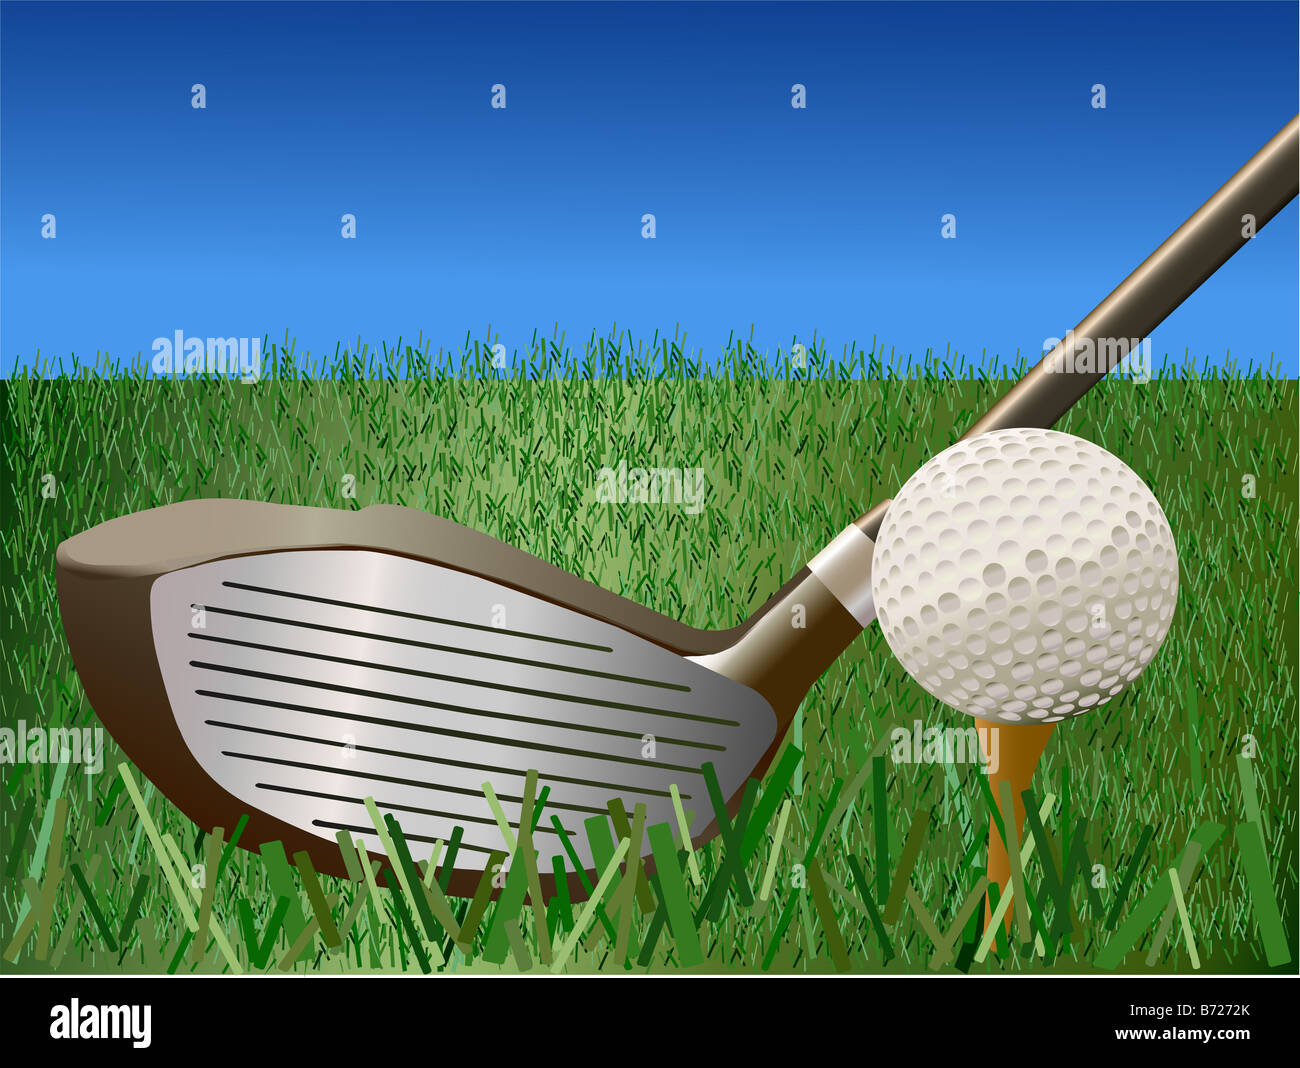 Golf - Vector Illustration - Stock Image